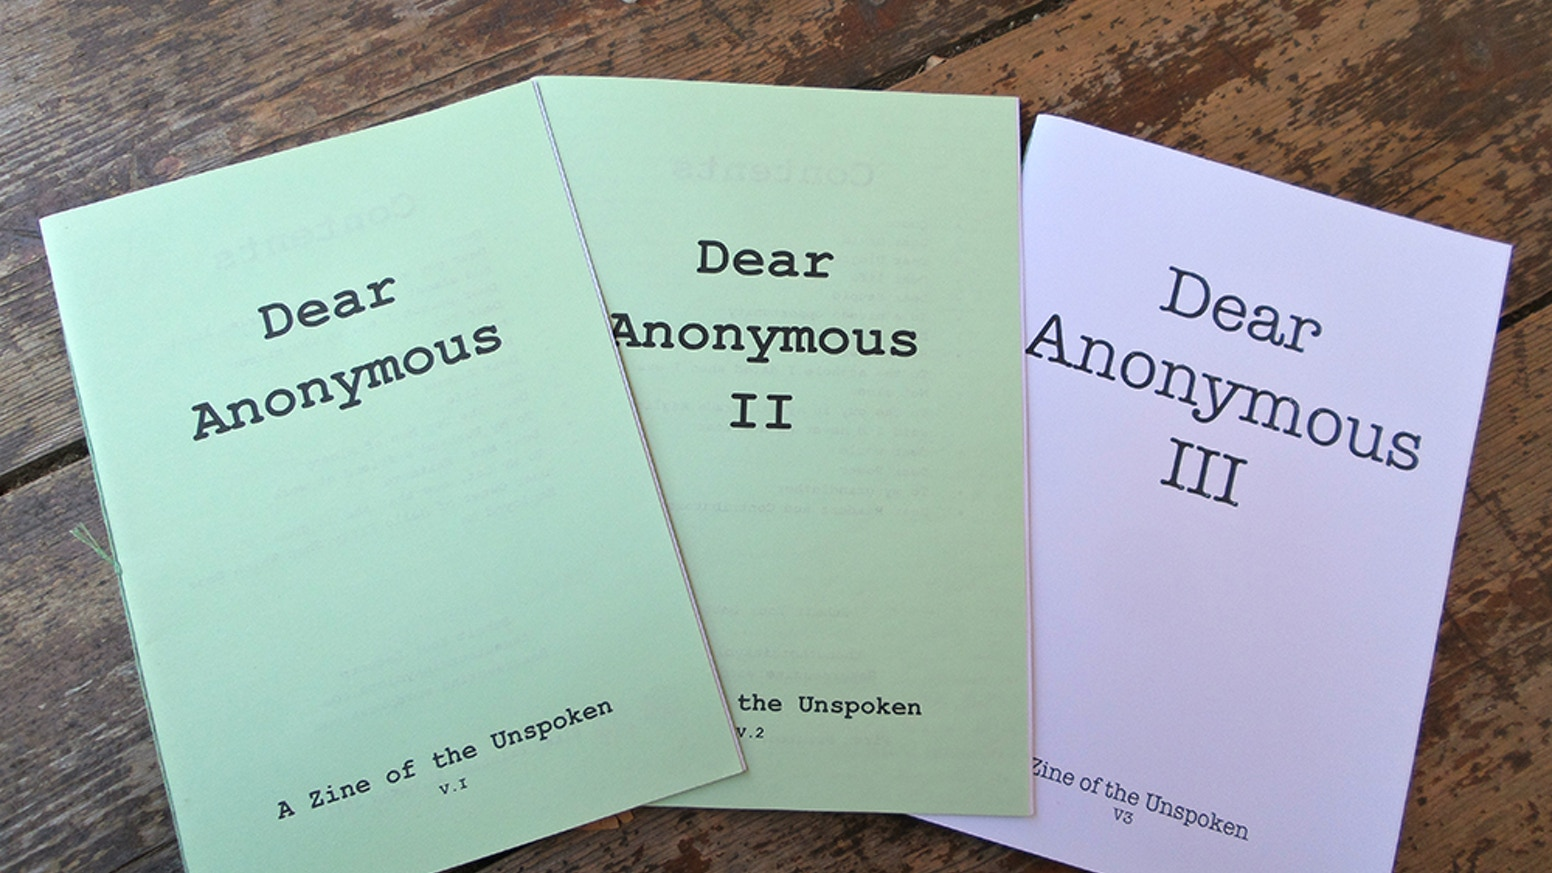 Dear Anonymous is a zine series featuring letters to lost loves, crappy doctors, old stuffed animals, and more. Help get #4 into print.